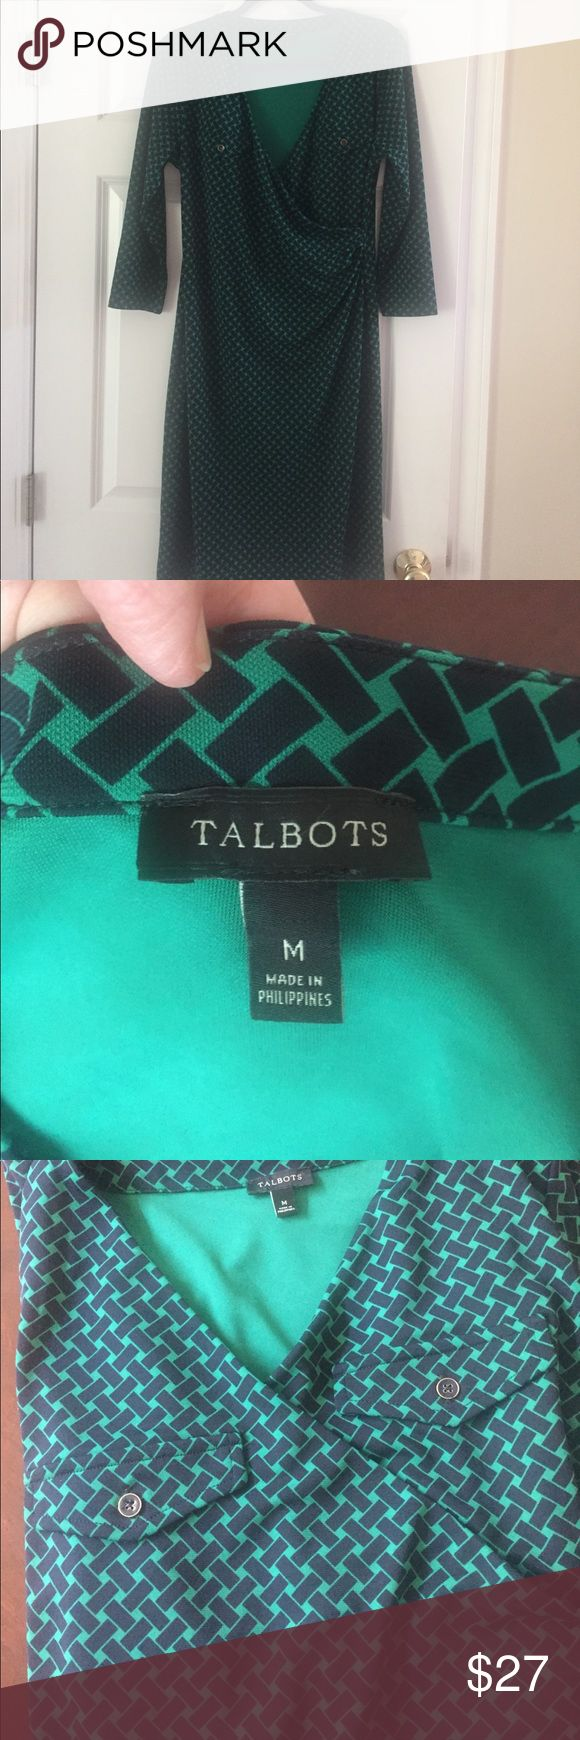 Talbots blue and green faux wrap dress comfy Talbots blue and green faux wrap dress comfy, this is the perfect dress for traveling, easy care, wrinkle prof, dress up or down, very slimming, has belt loops, pretty pattern Talbots Dresses